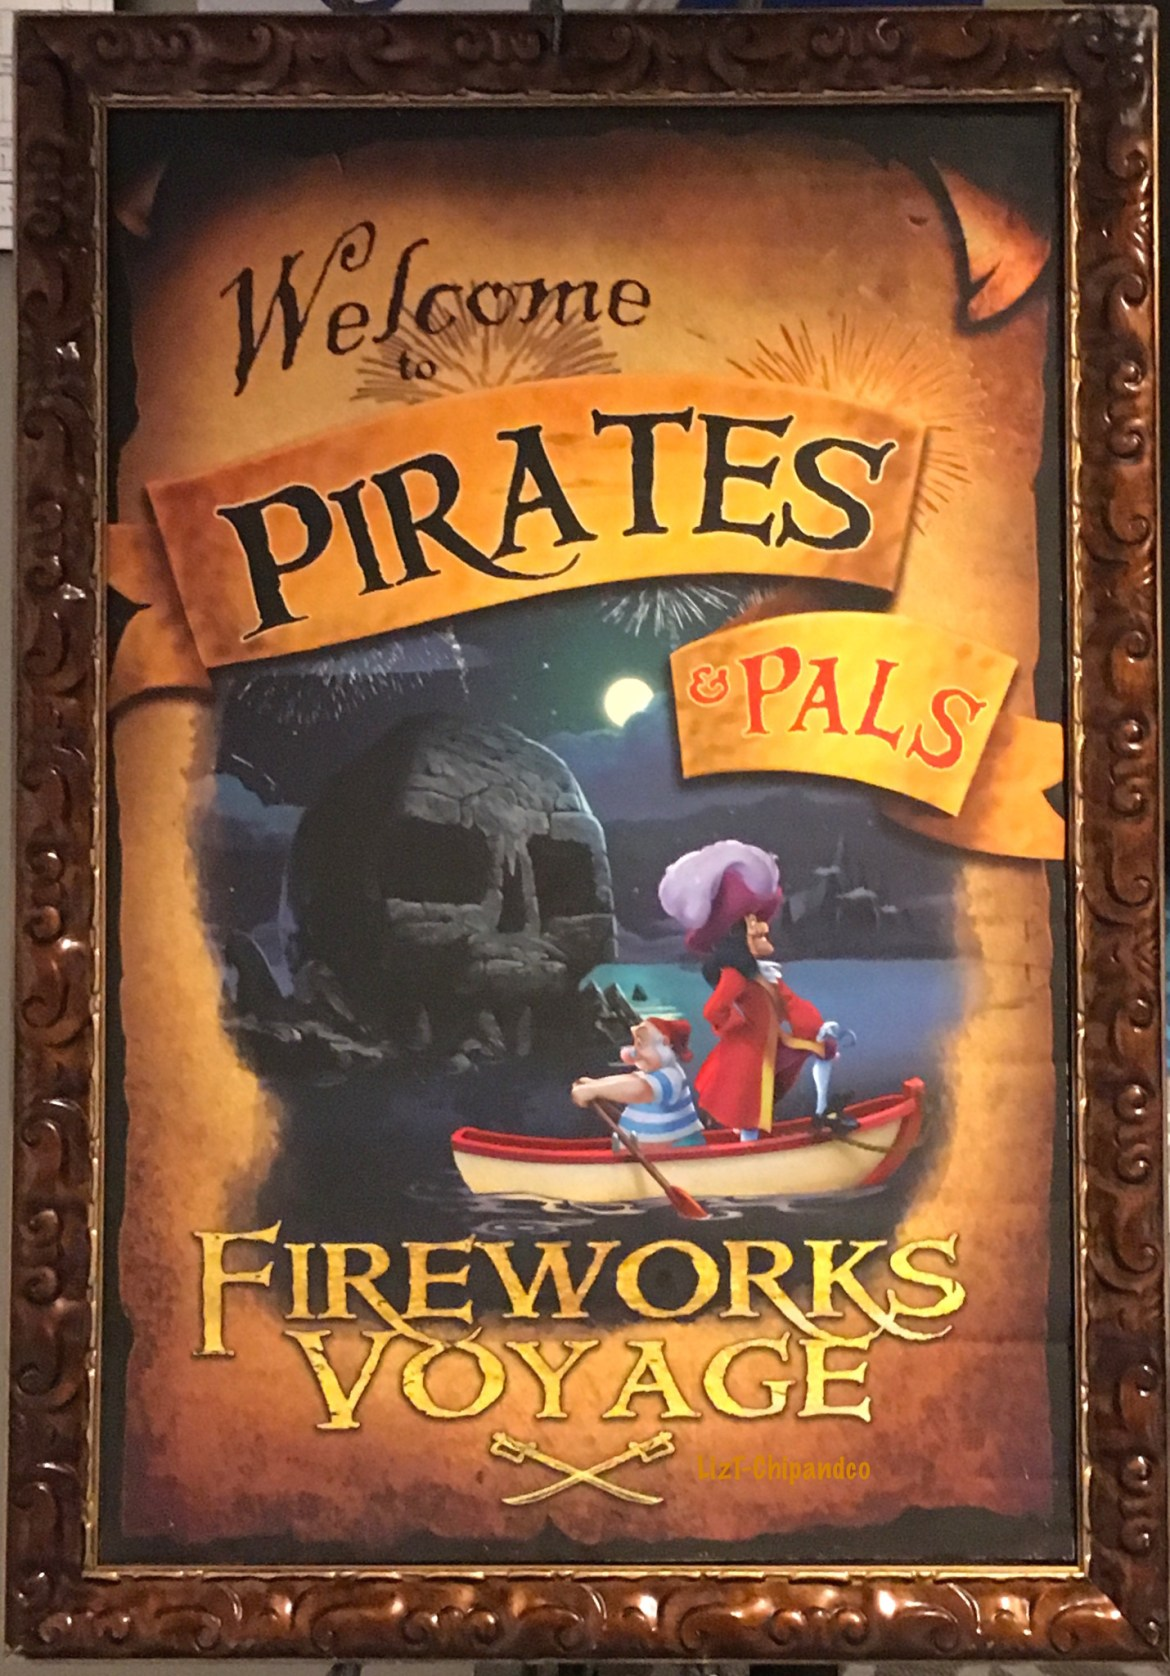 Take a Pirates and Pals Fireworks Cruise at Walt Disney World